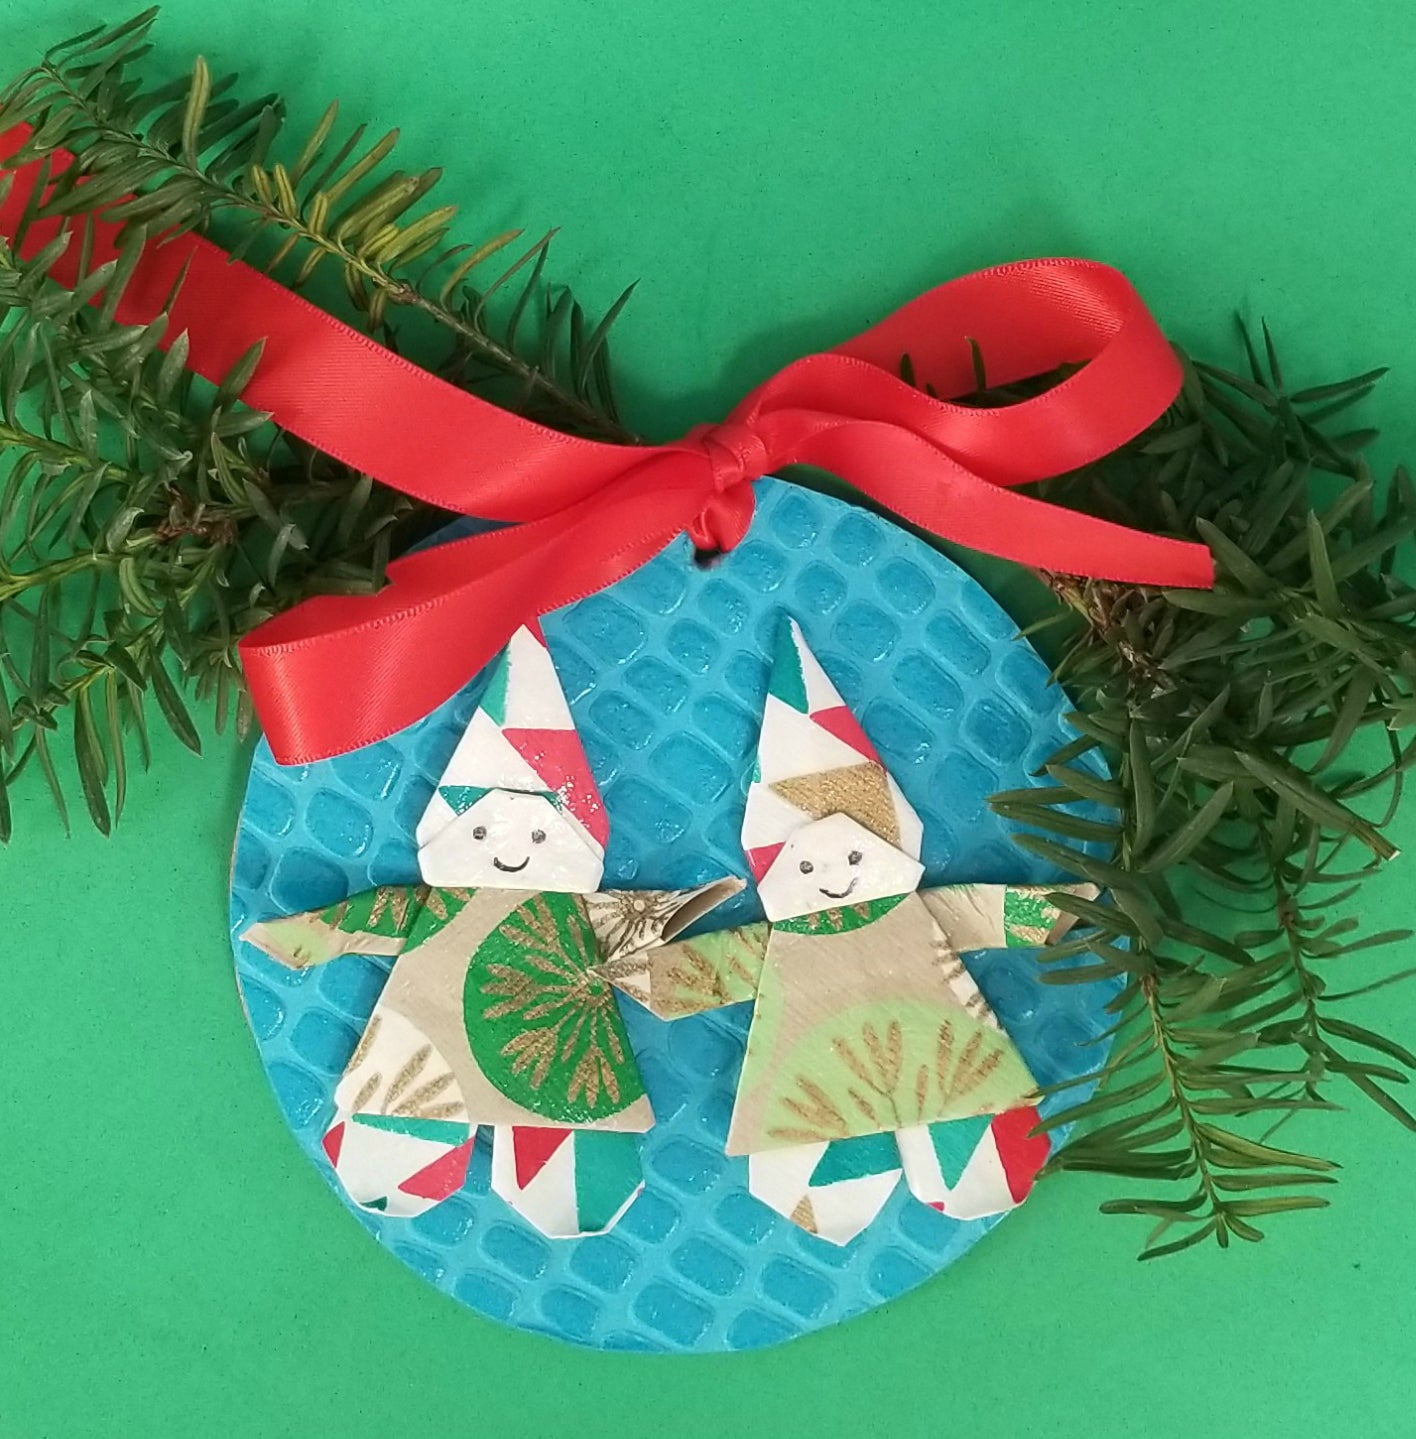 DIY Christmas Ornament Kit - Snowman-Elves-Angel